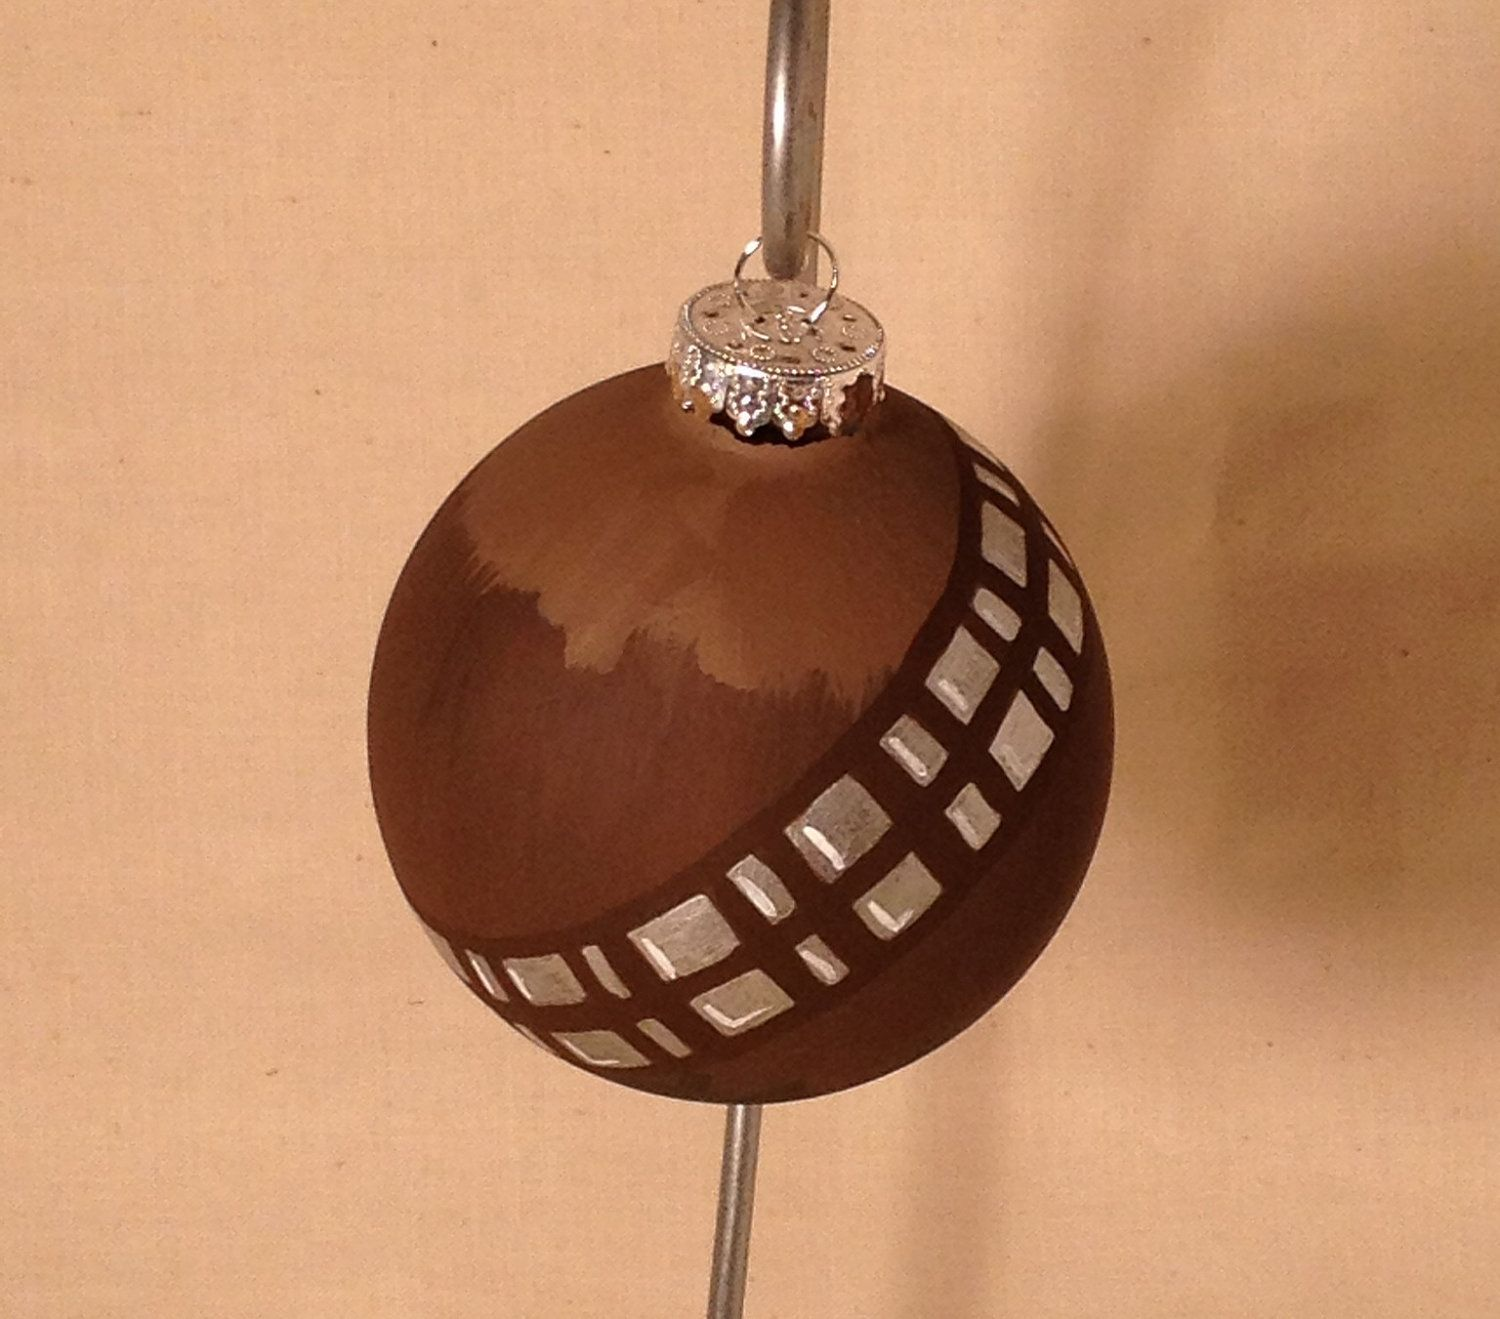 chewbacca inspired ornament christmas ornaments pinterest christbaumschmuck und. Black Bedroom Furniture Sets. Home Design Ideas